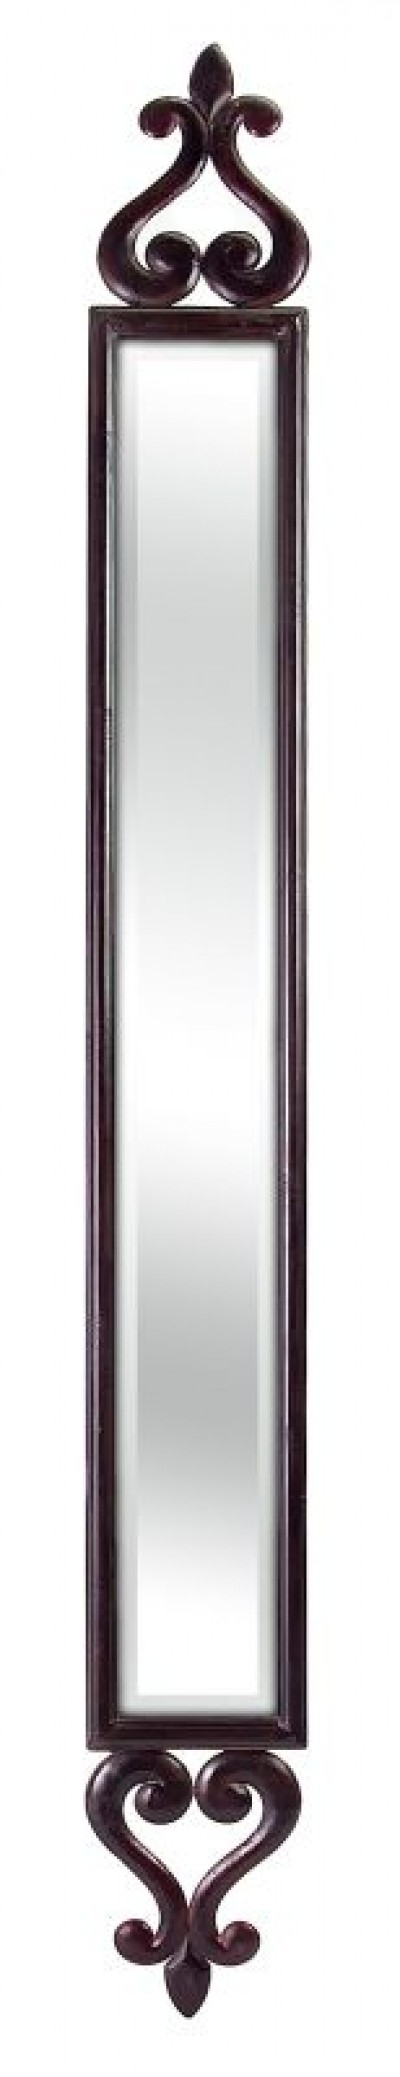 Tall Narrow Wall Mirrors